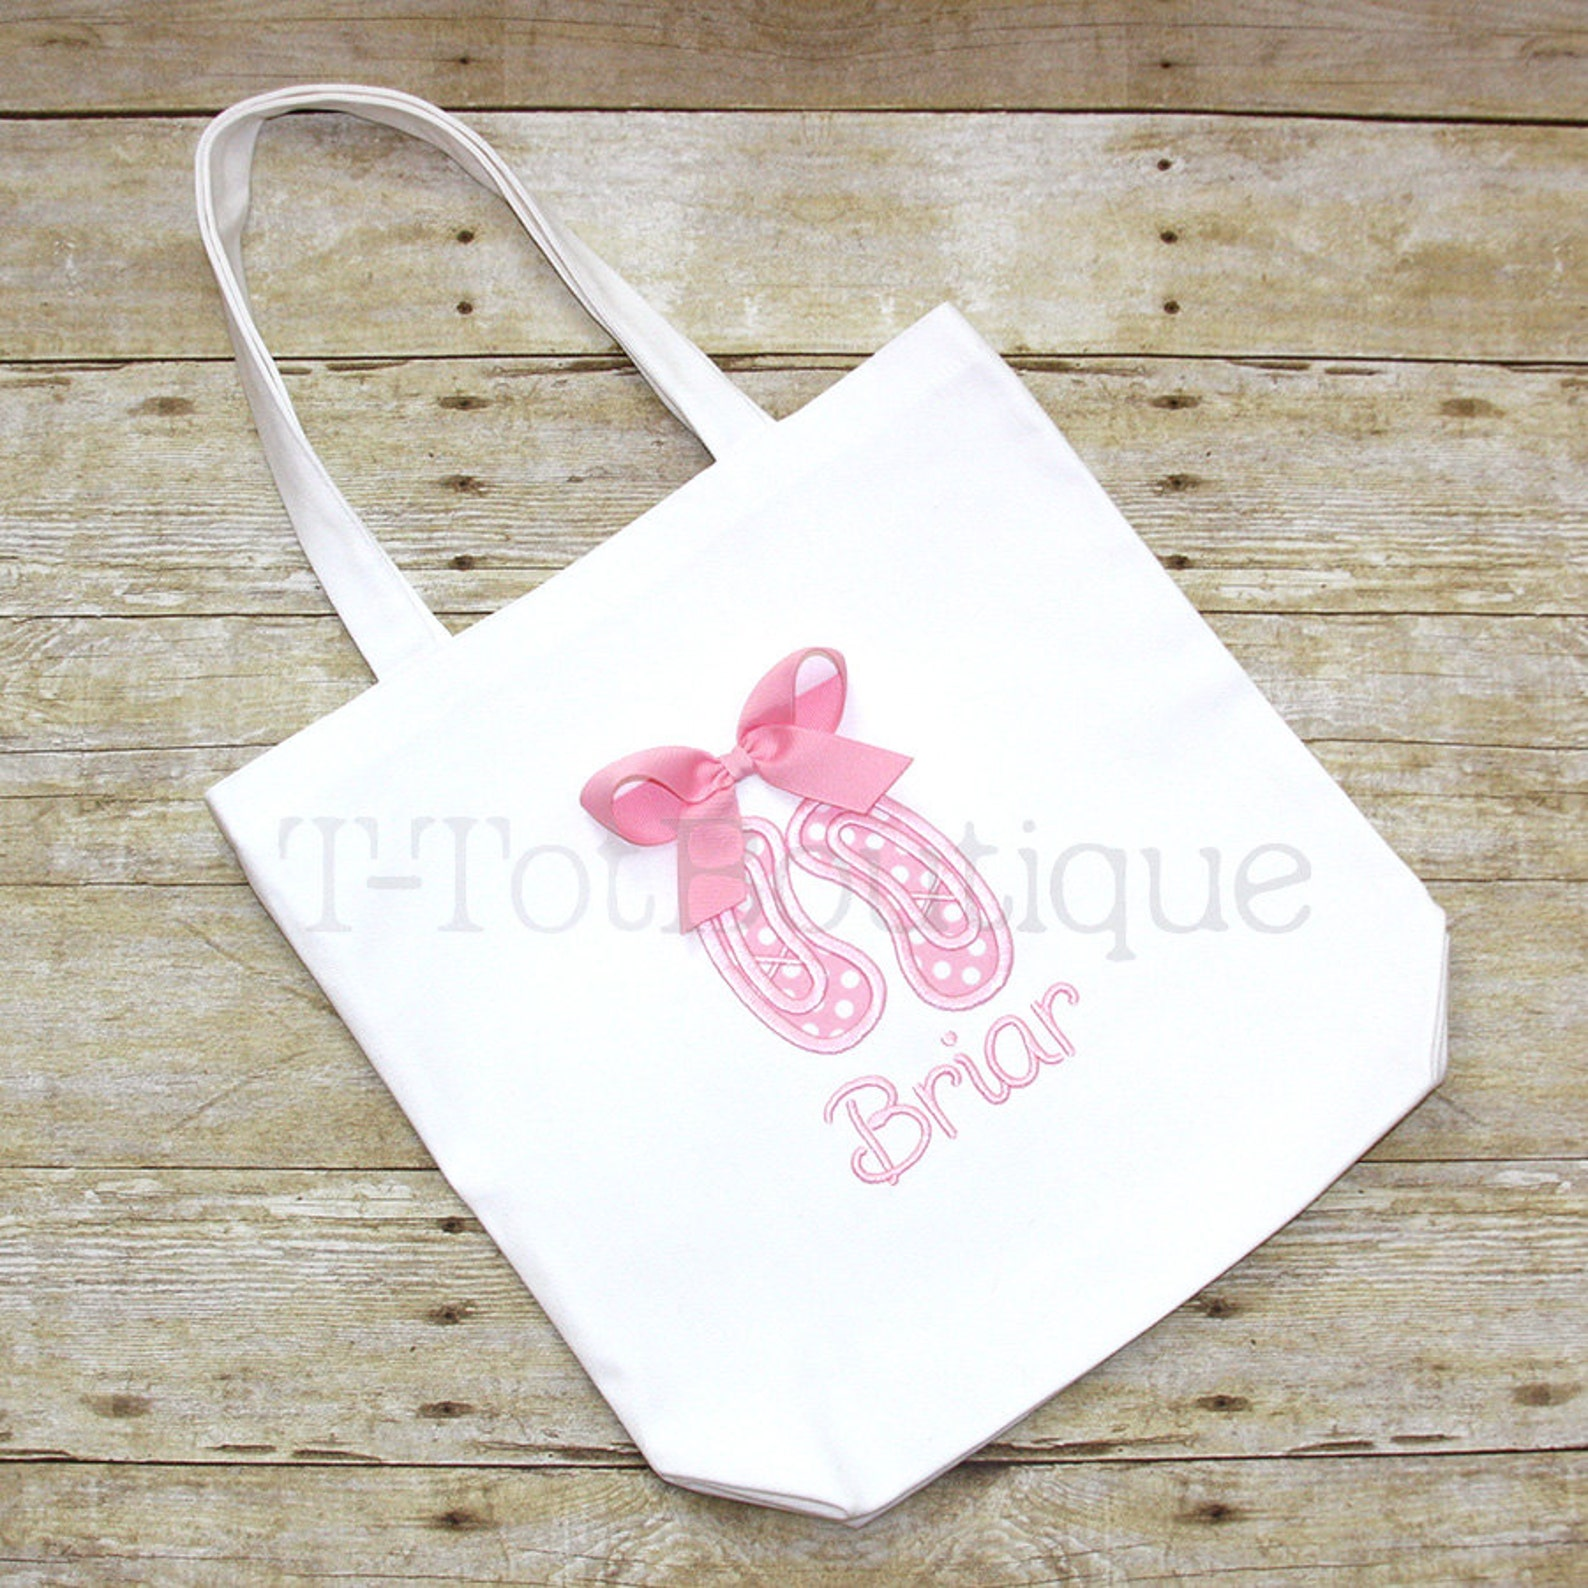 ballet shoes embroidered tote bag with real 3d bow - first day of dance class or dance recital - free personalization